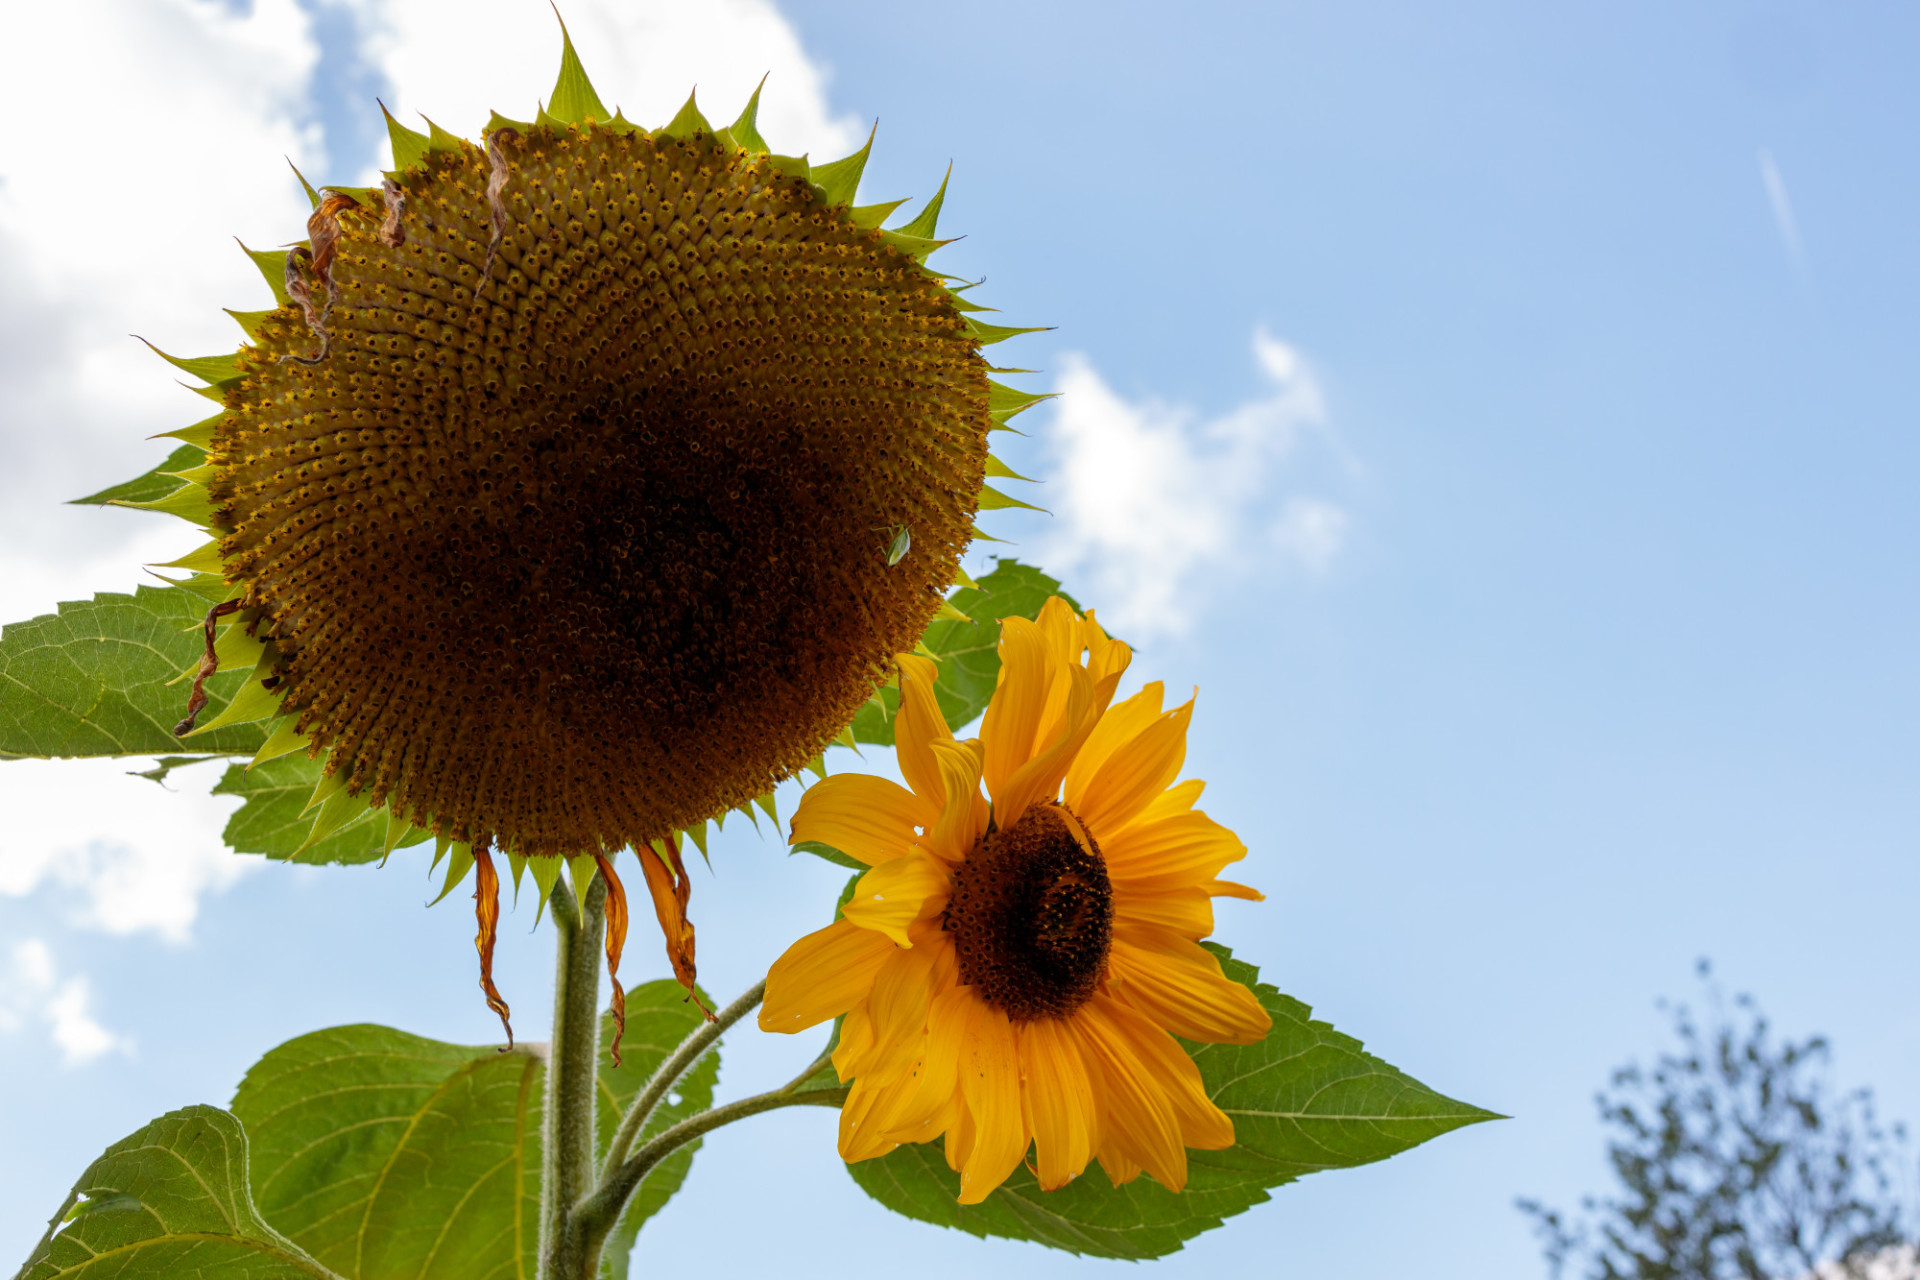 Sunflower without petals